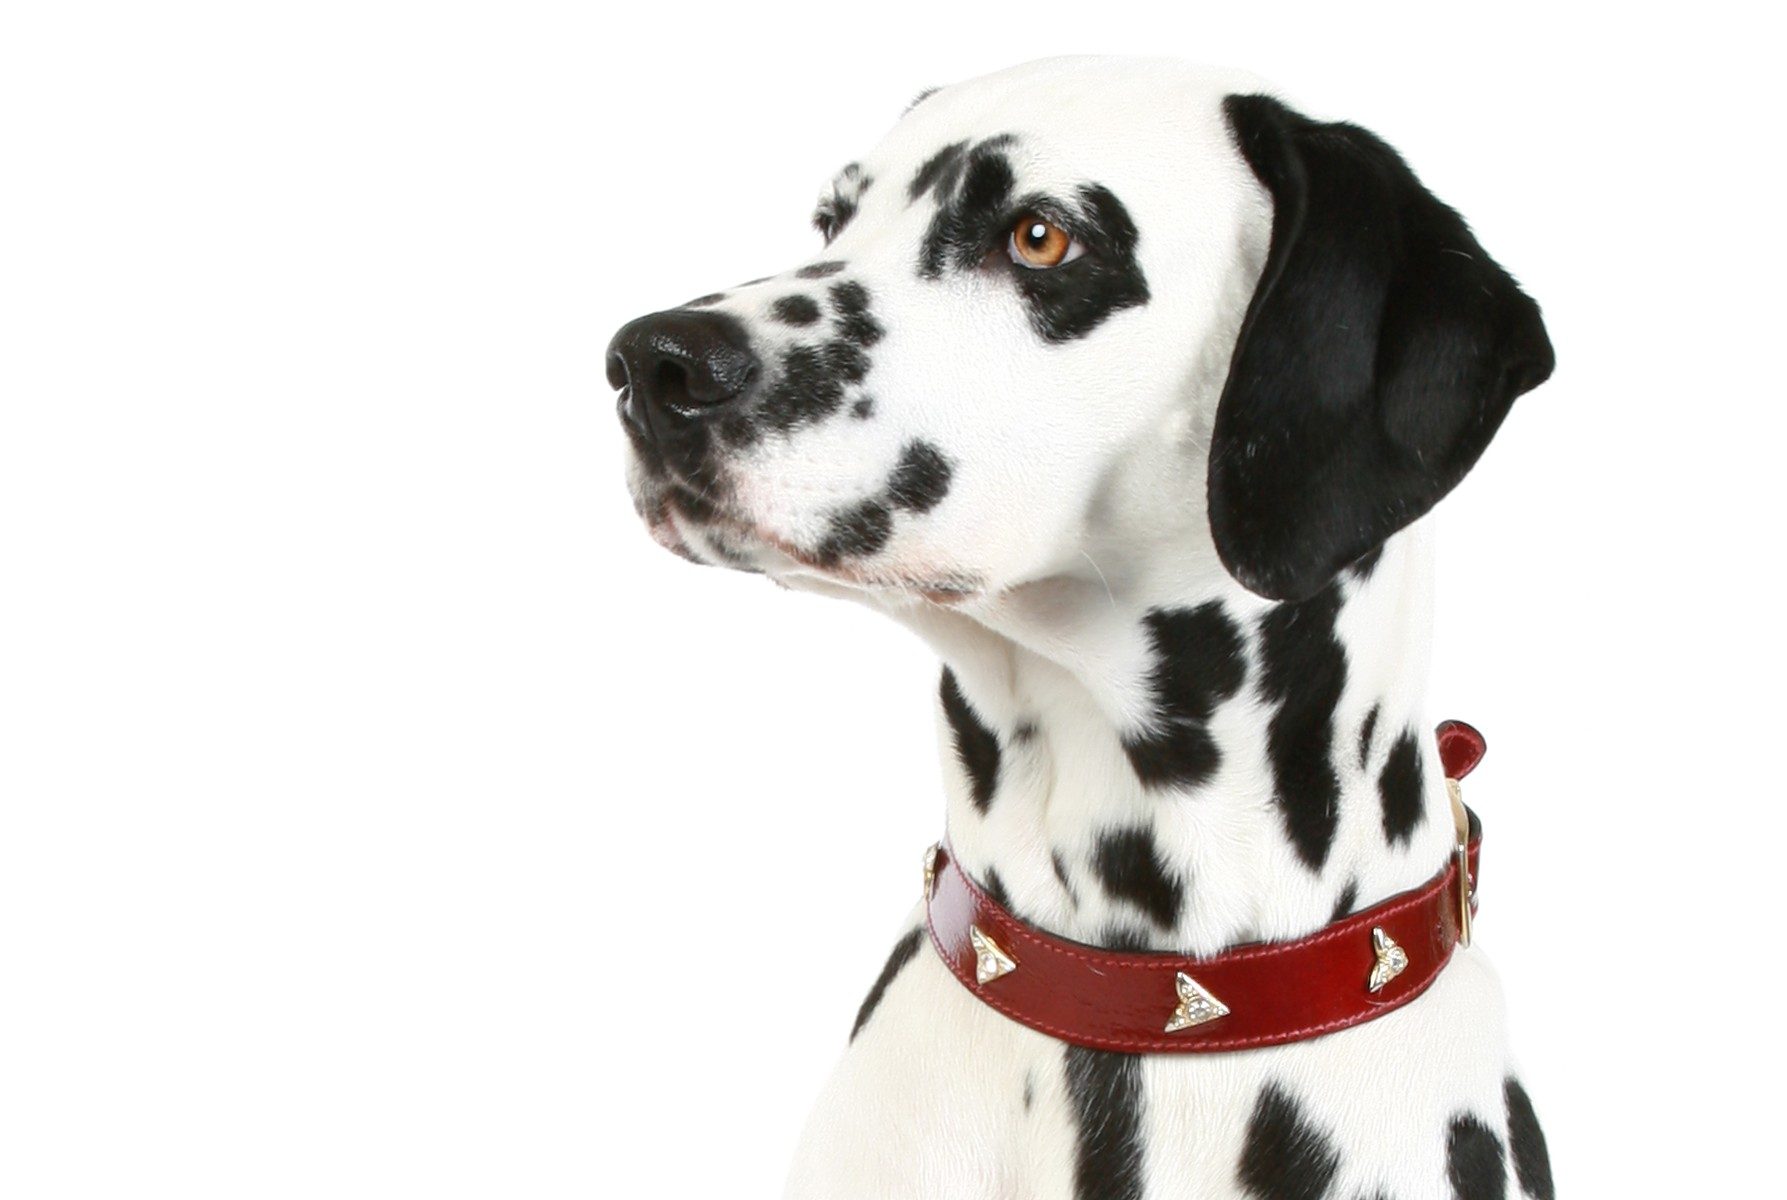 NOW HIRING! Polka Dot Dogs